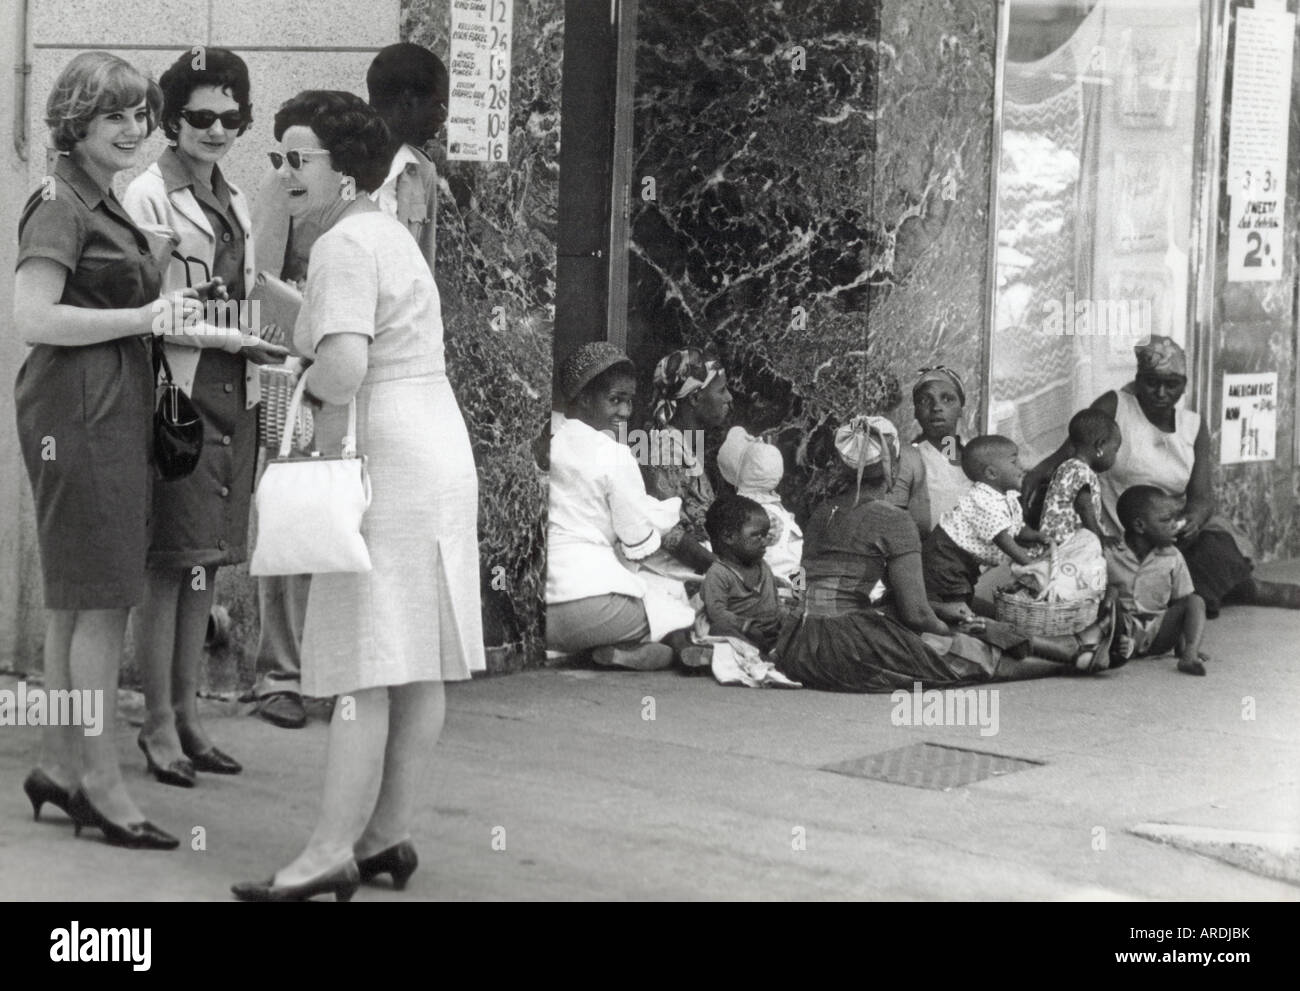 Shoppers in Salisbury Rhodesia, later Harare Zimbabwe, when white minority rule prevailed - Stock Image